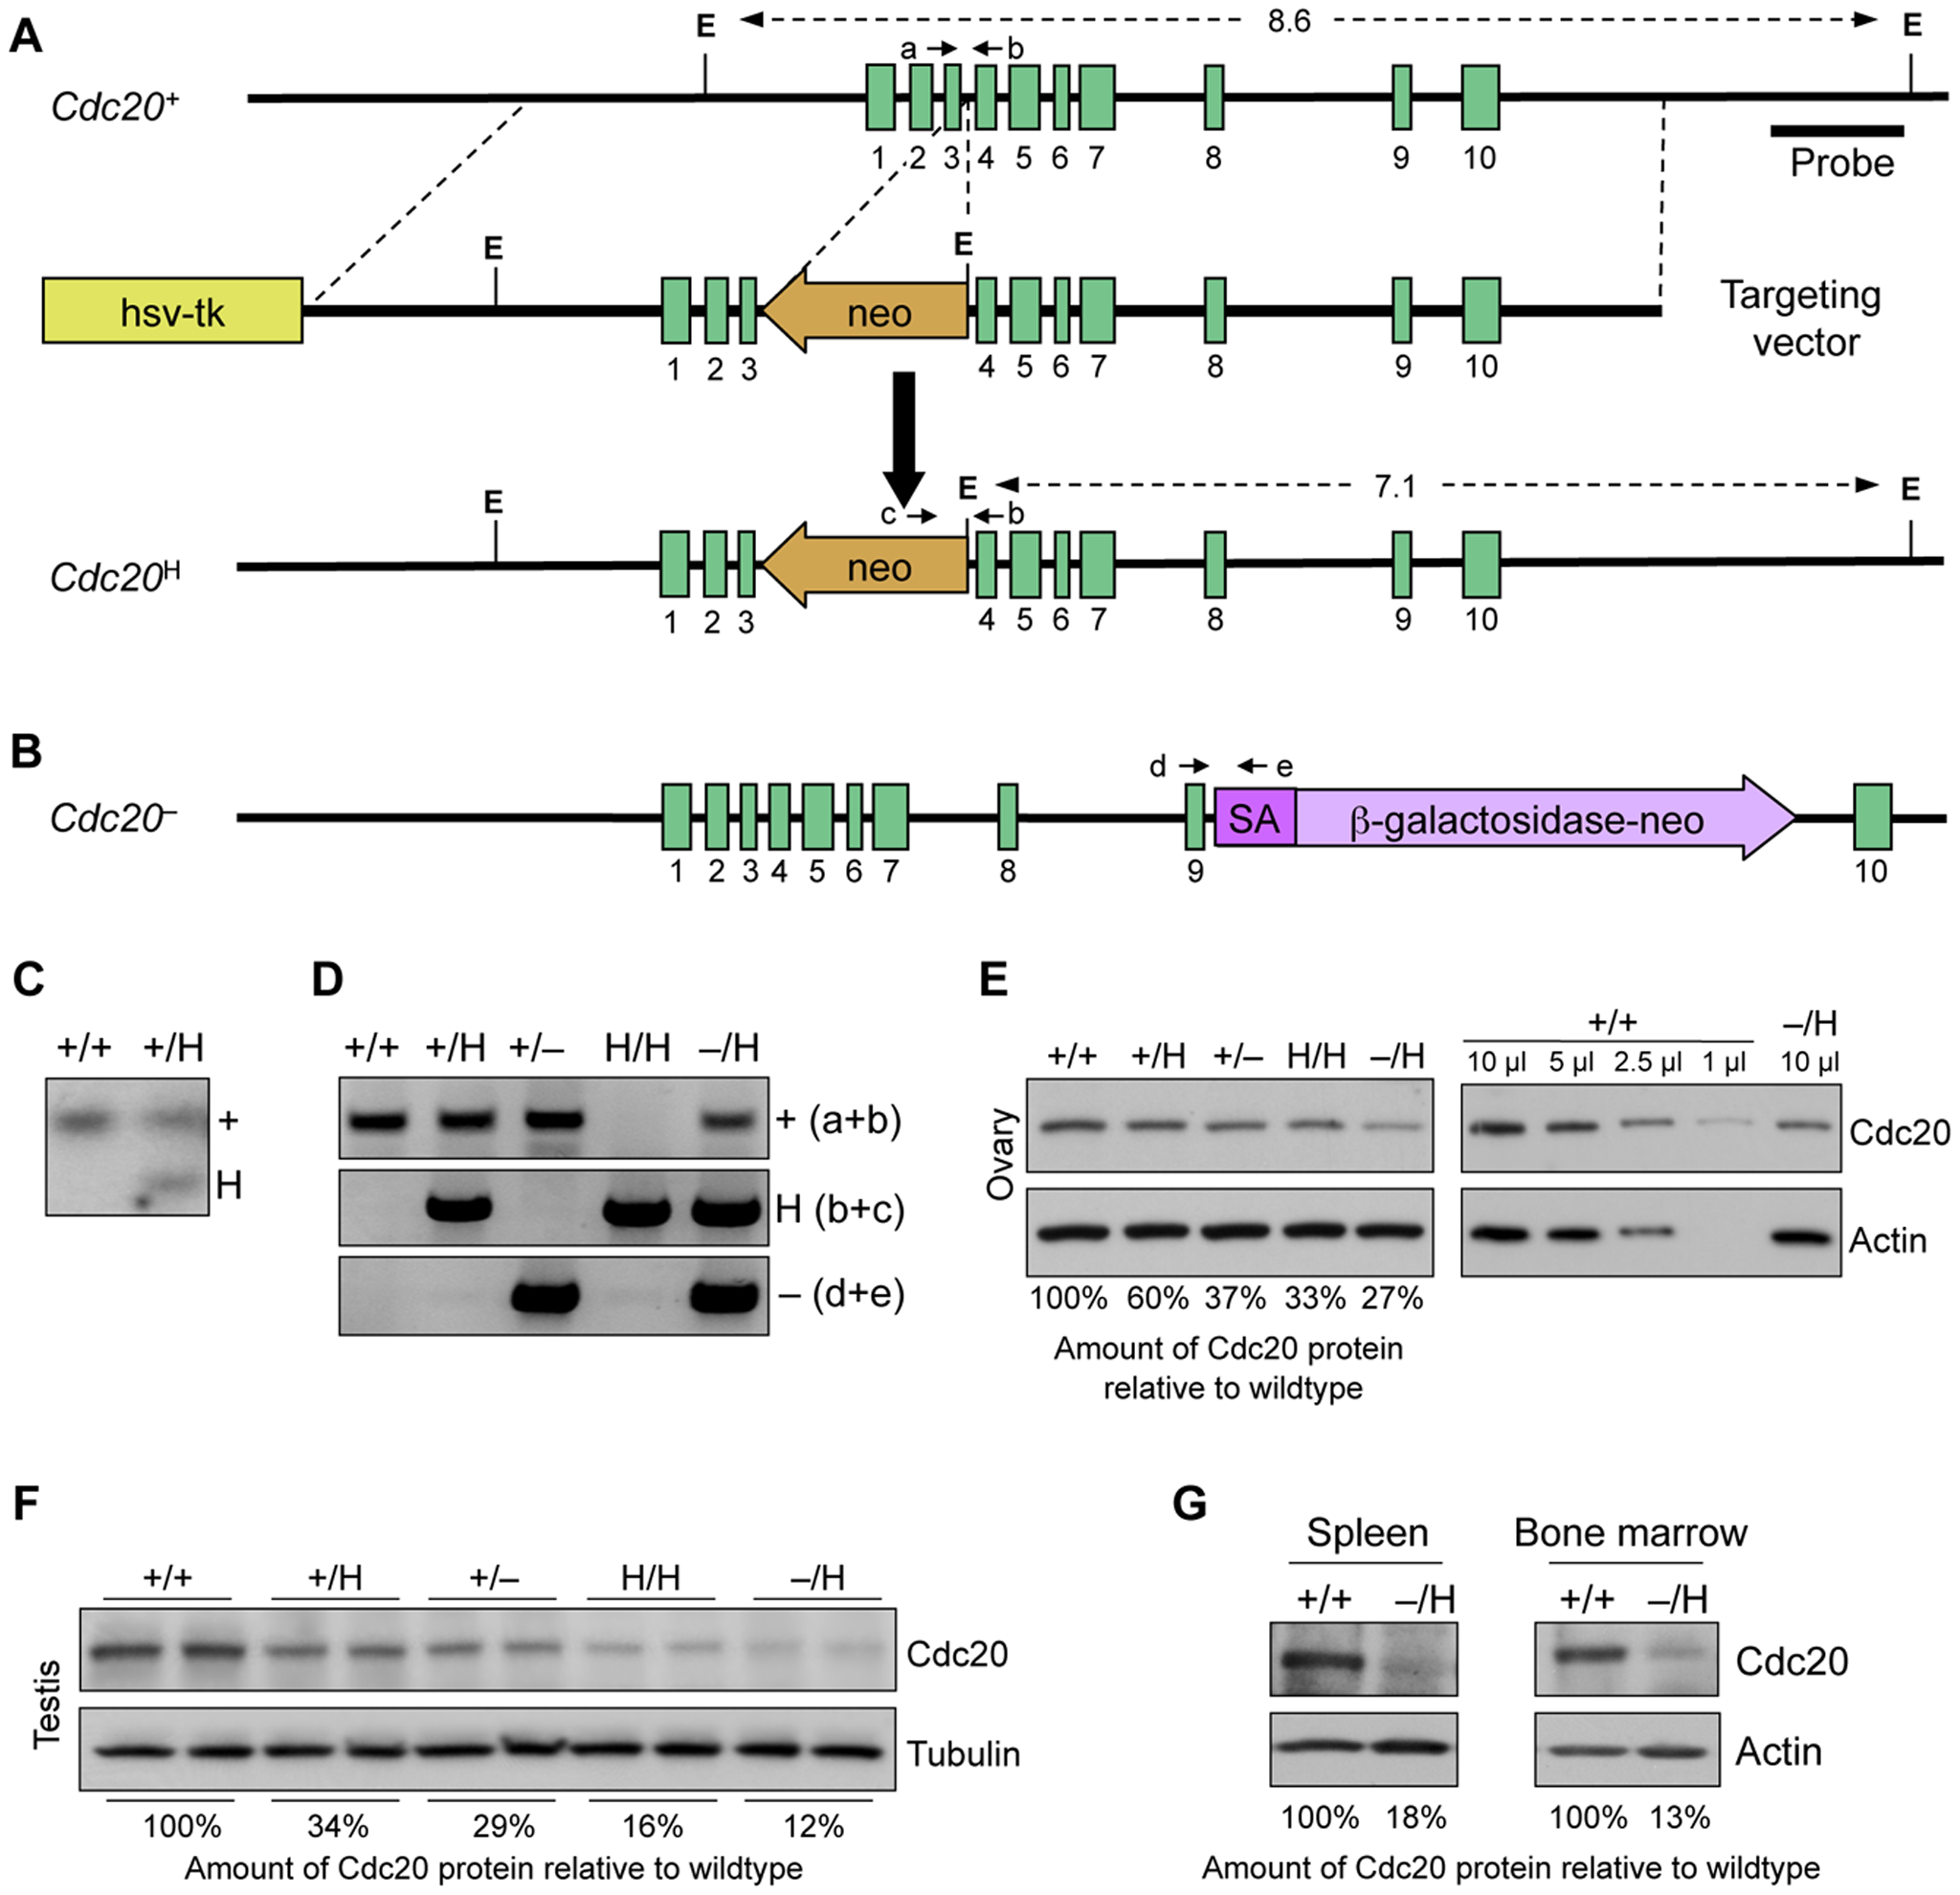 Generation of mice with graded reduction in Cdc20 dosage.